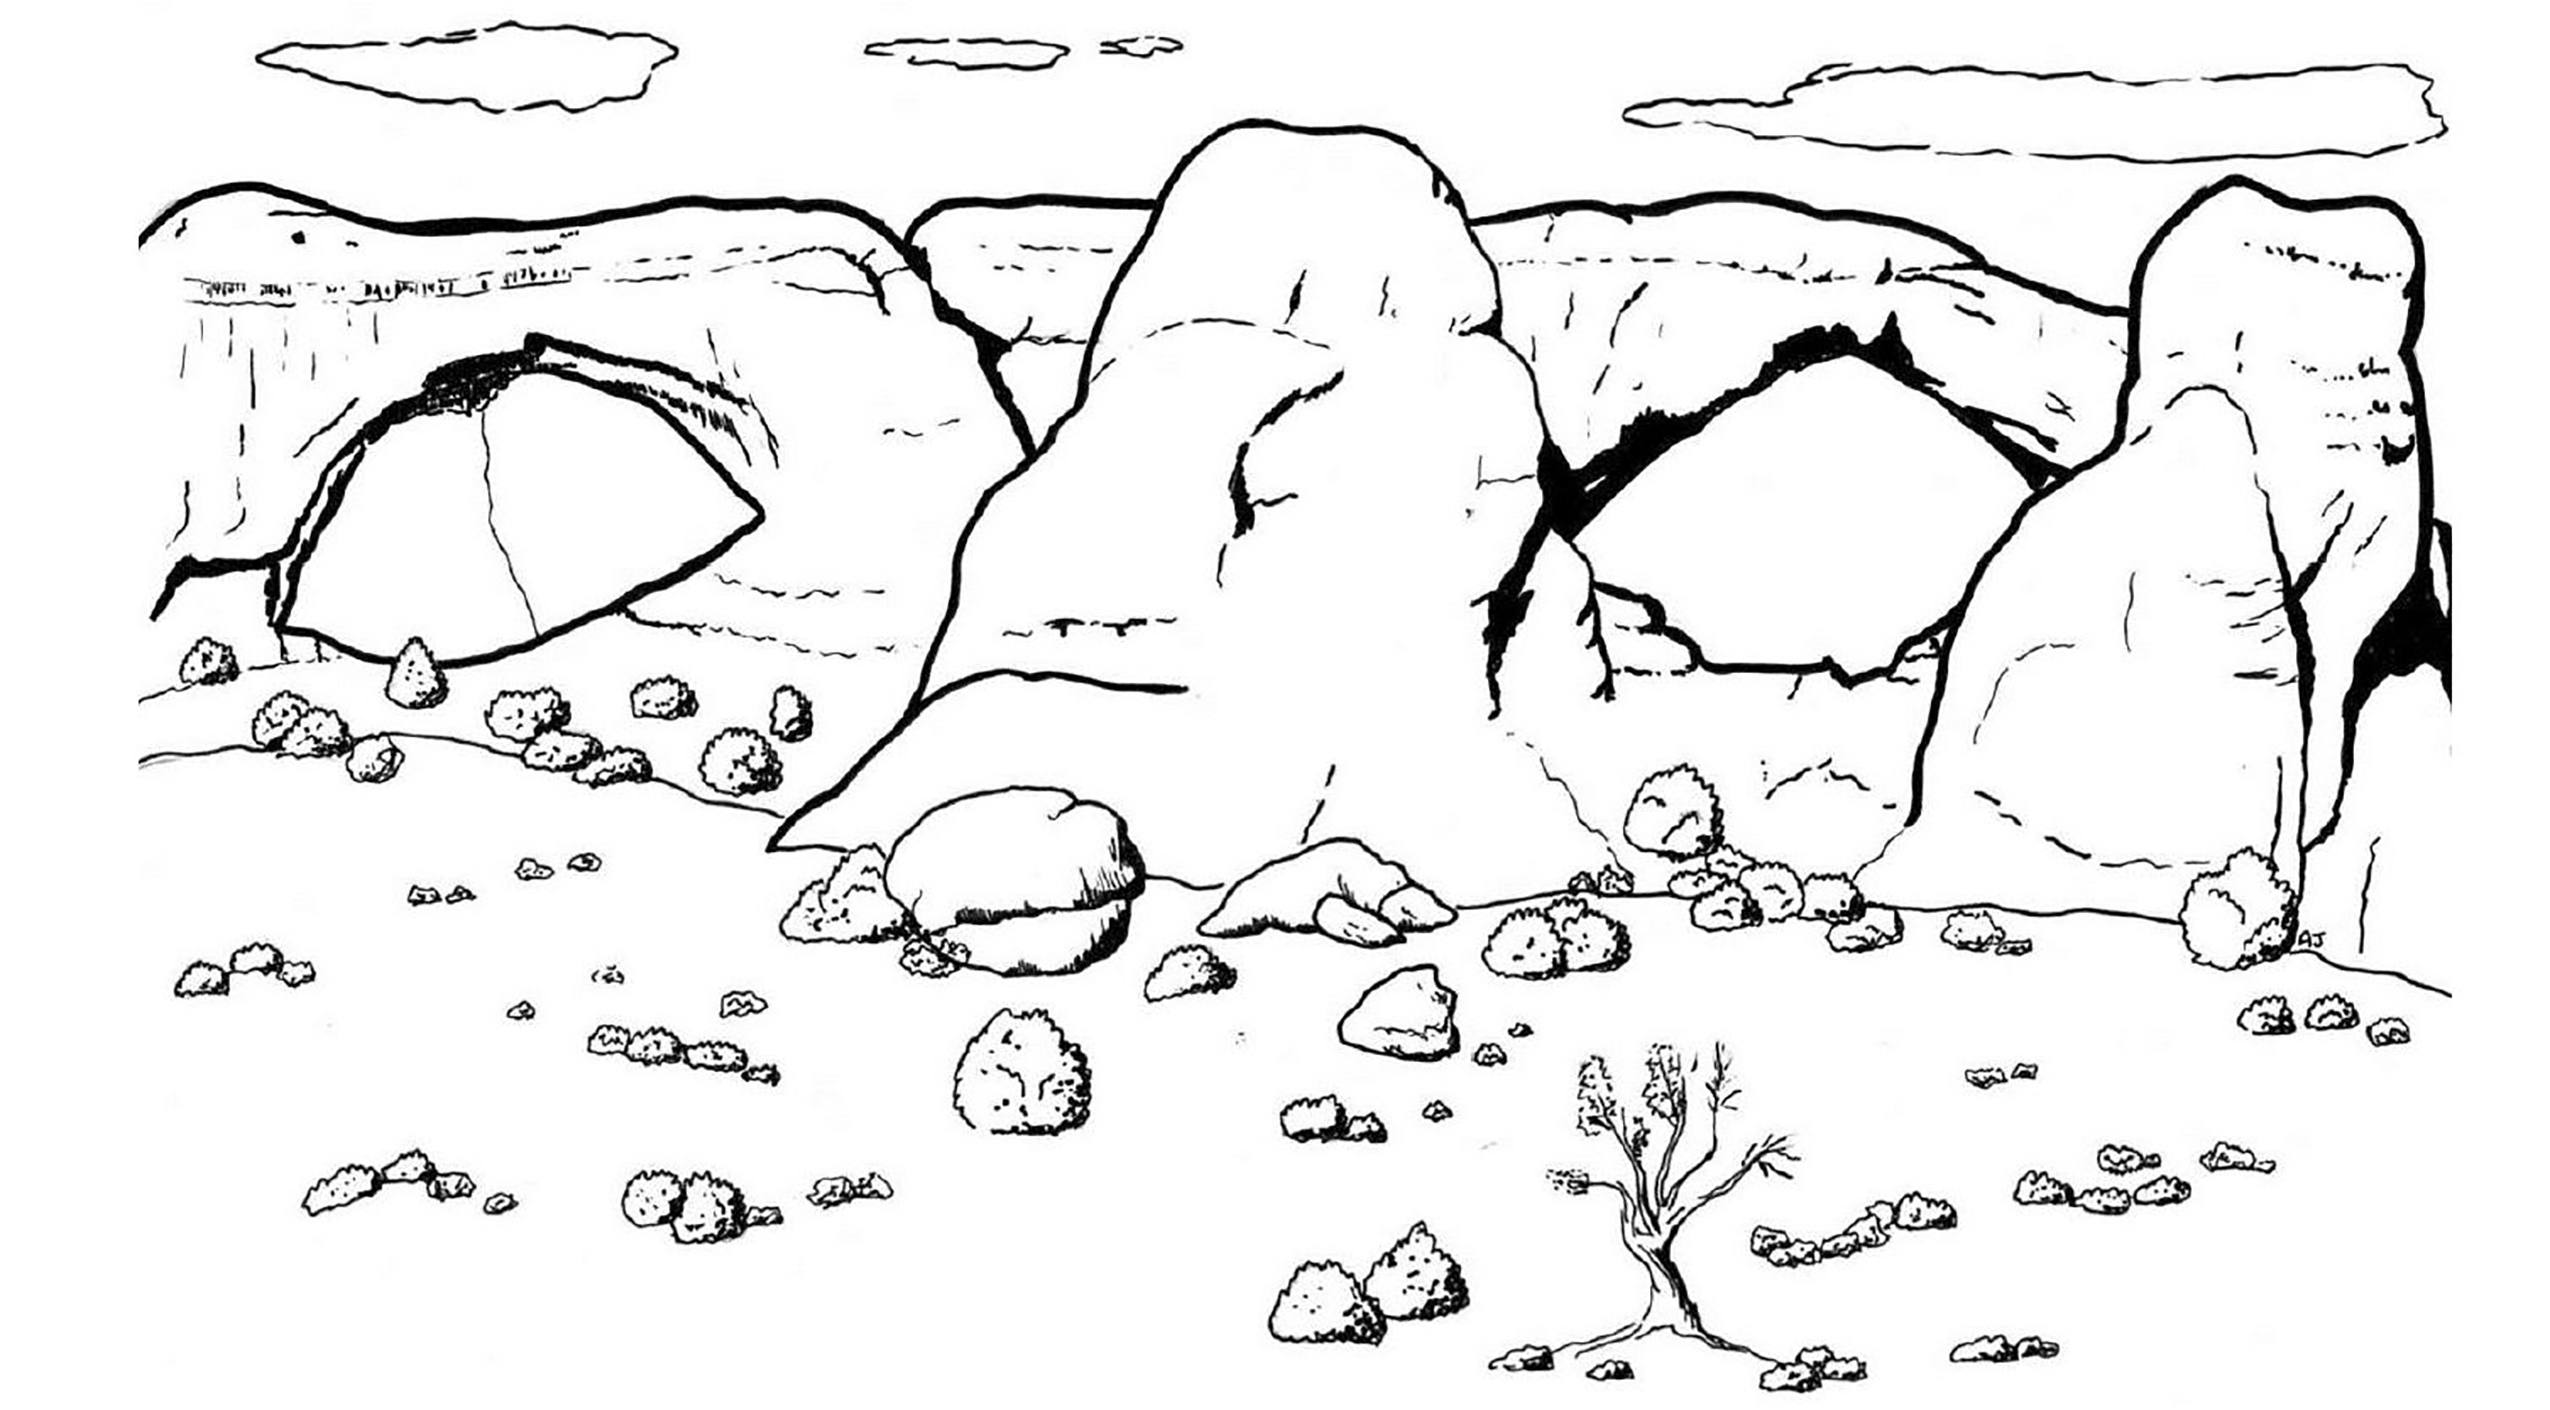 Coloring Pages - Arches National Park (U.s. National Park Service) - Free Printable South Park Coloring Pages